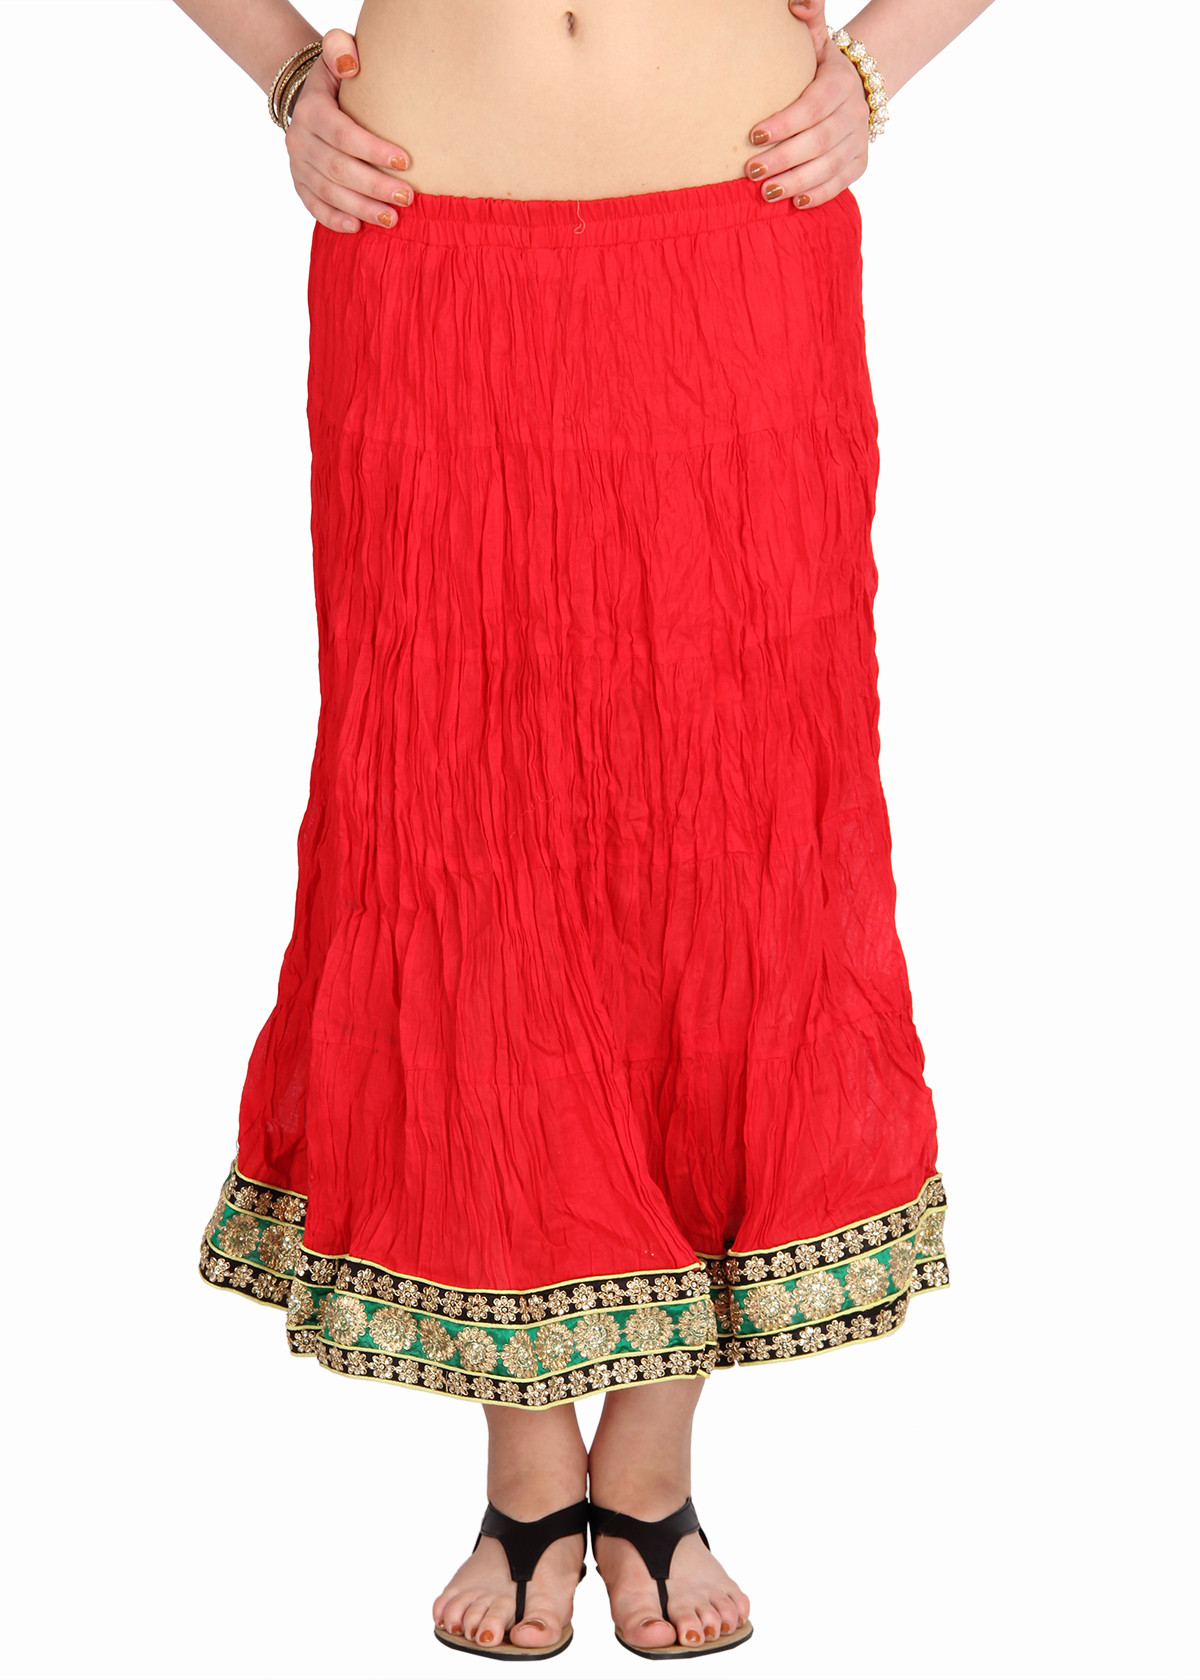 Mina Bazaar Self Design Womens A-line Red, Gold Skirt